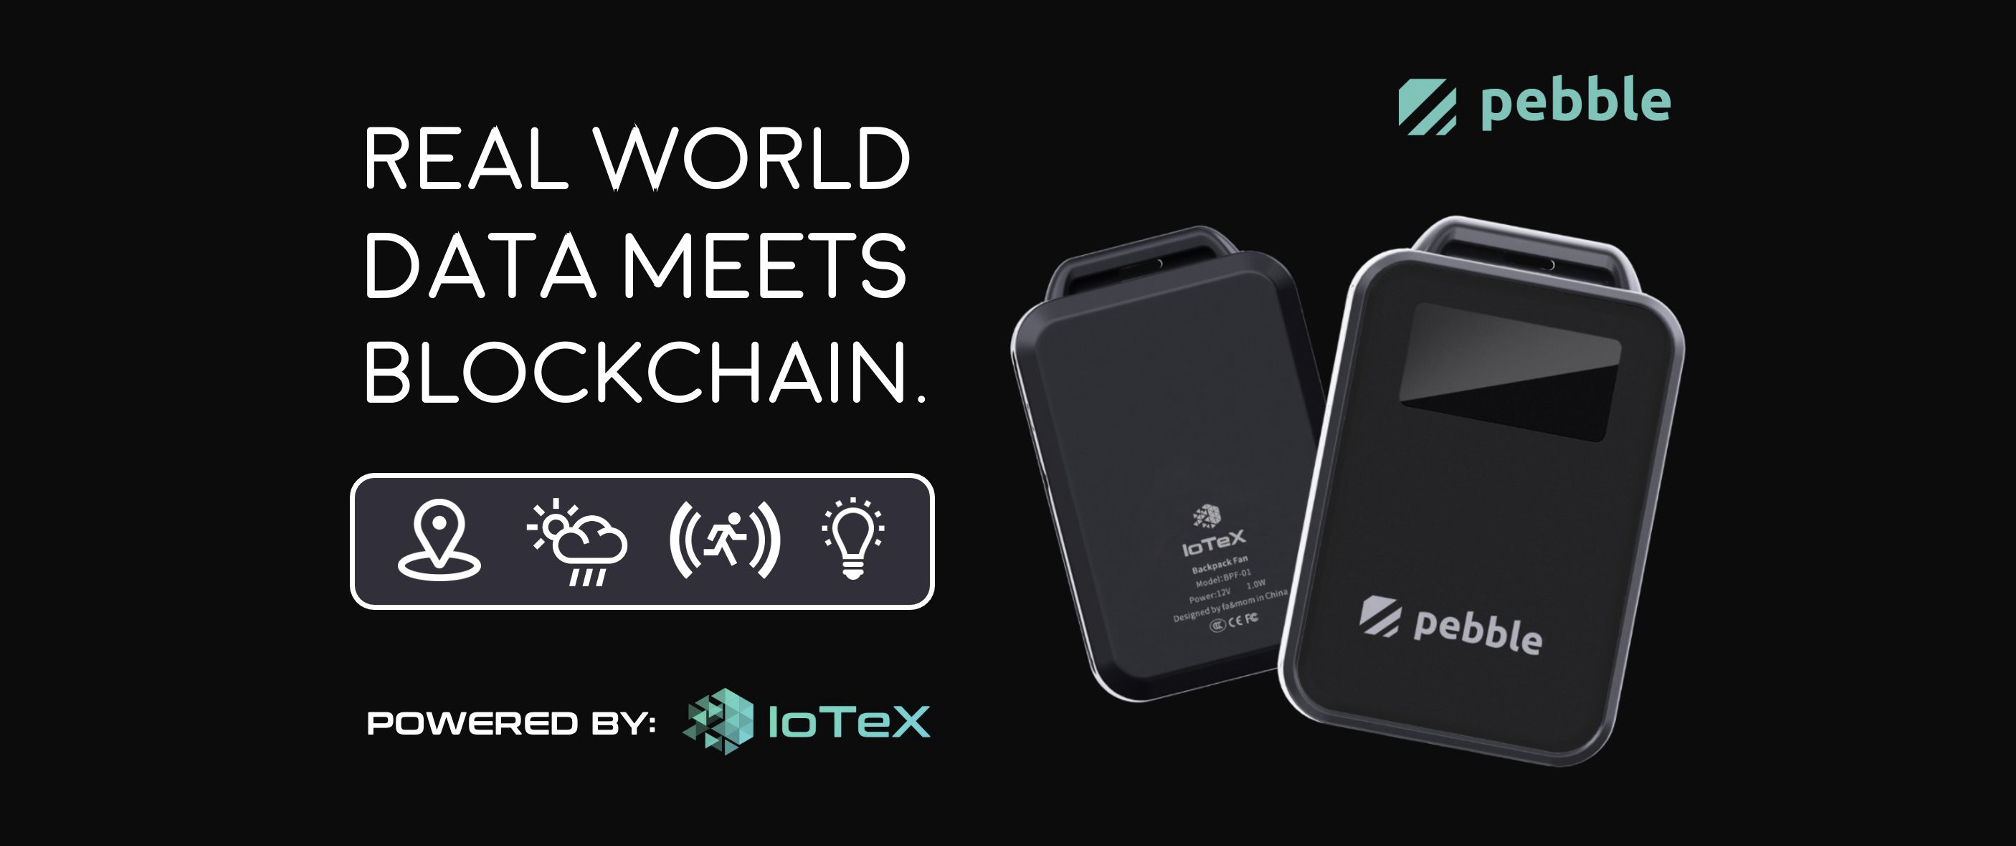 Real World Data Meets Blockchain - Image of Pebble tracking device